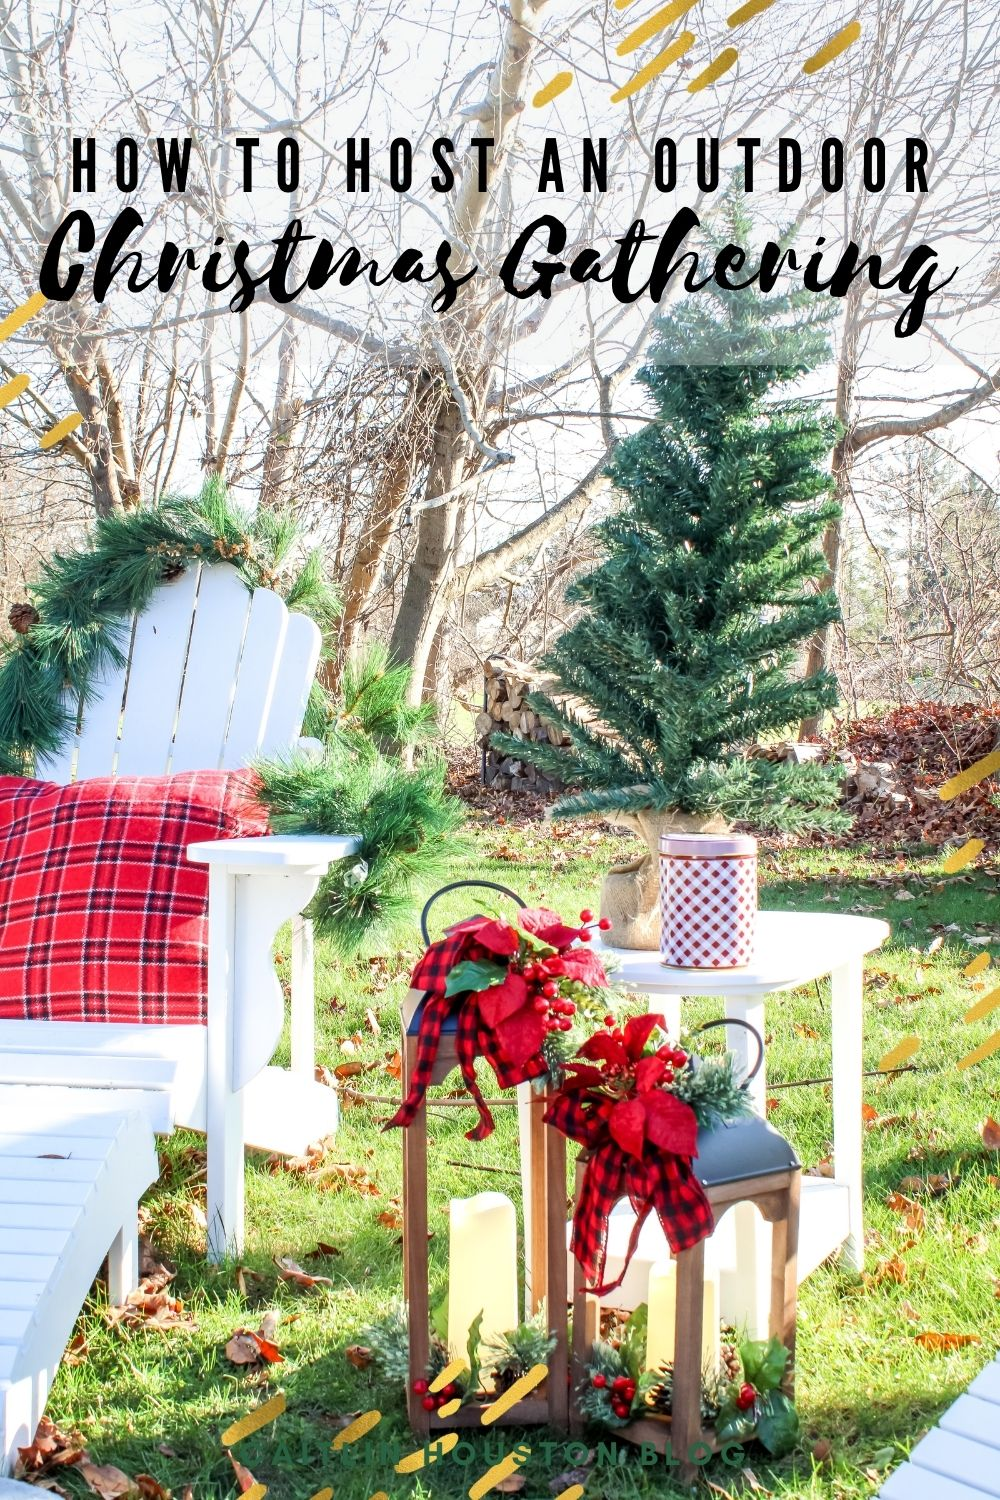 Tips for Hosting an Outdoor Christmas Gathering